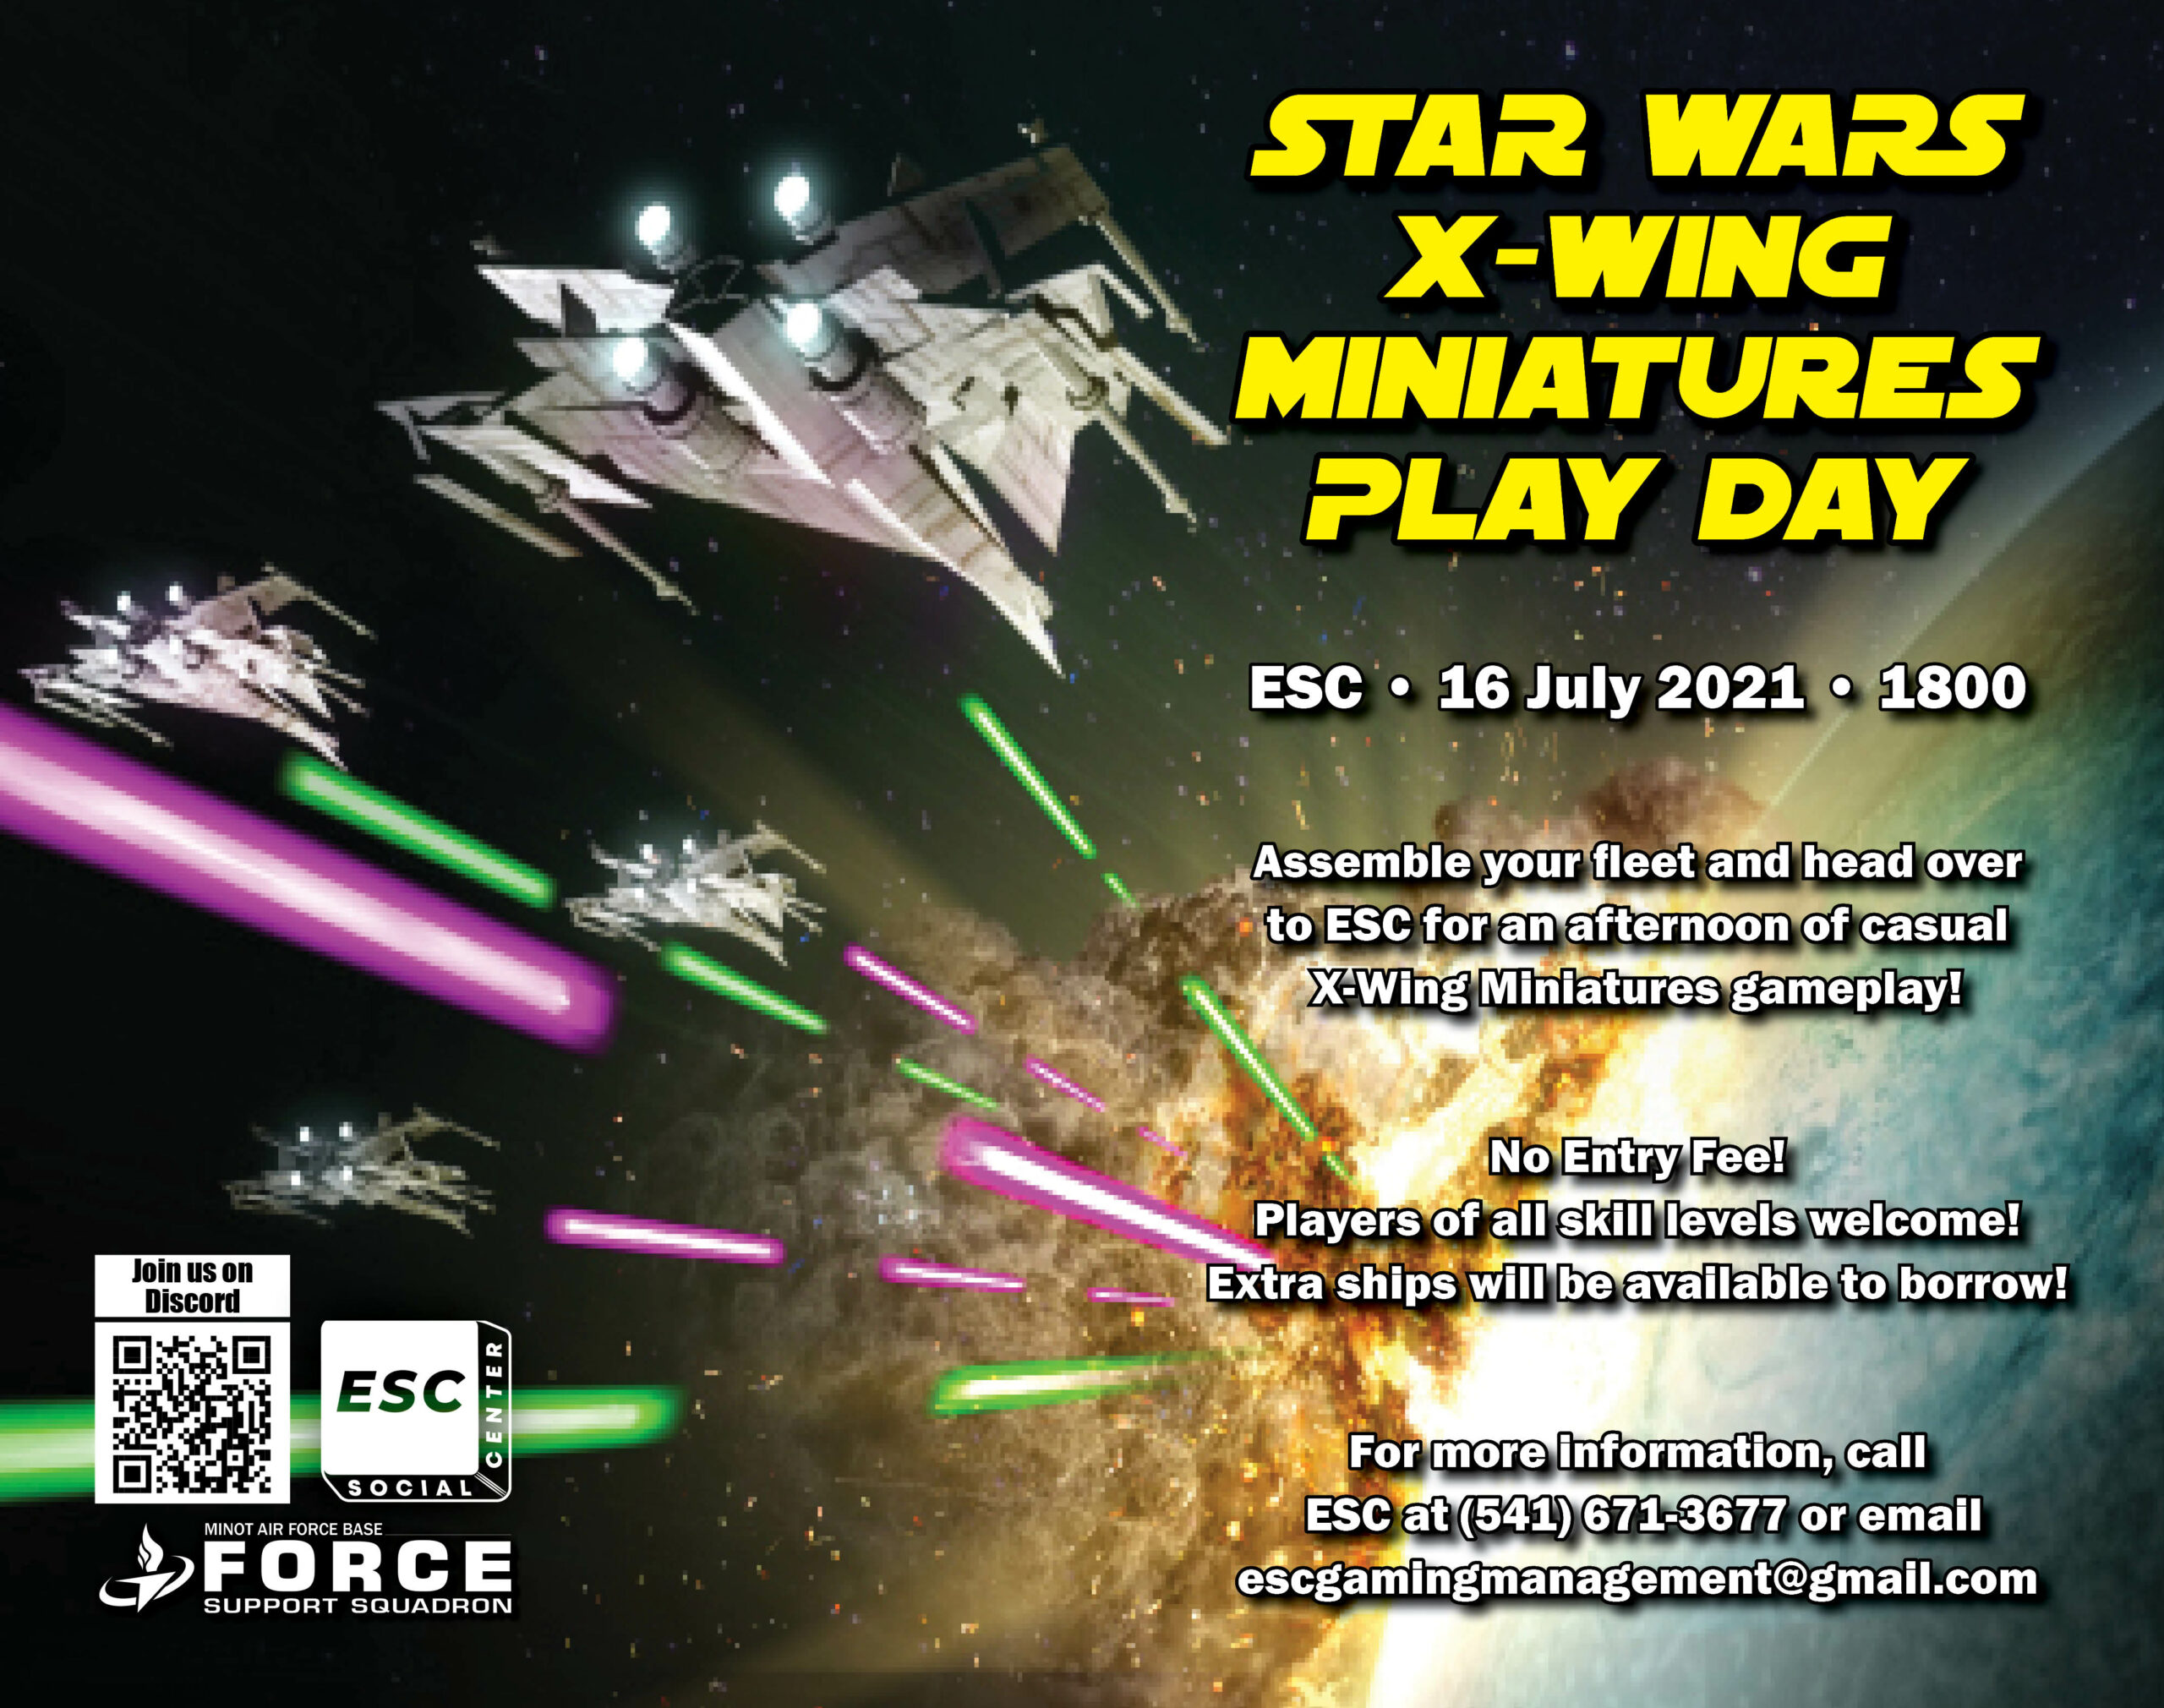 Star Wars X-Wing Miniatures Play Day